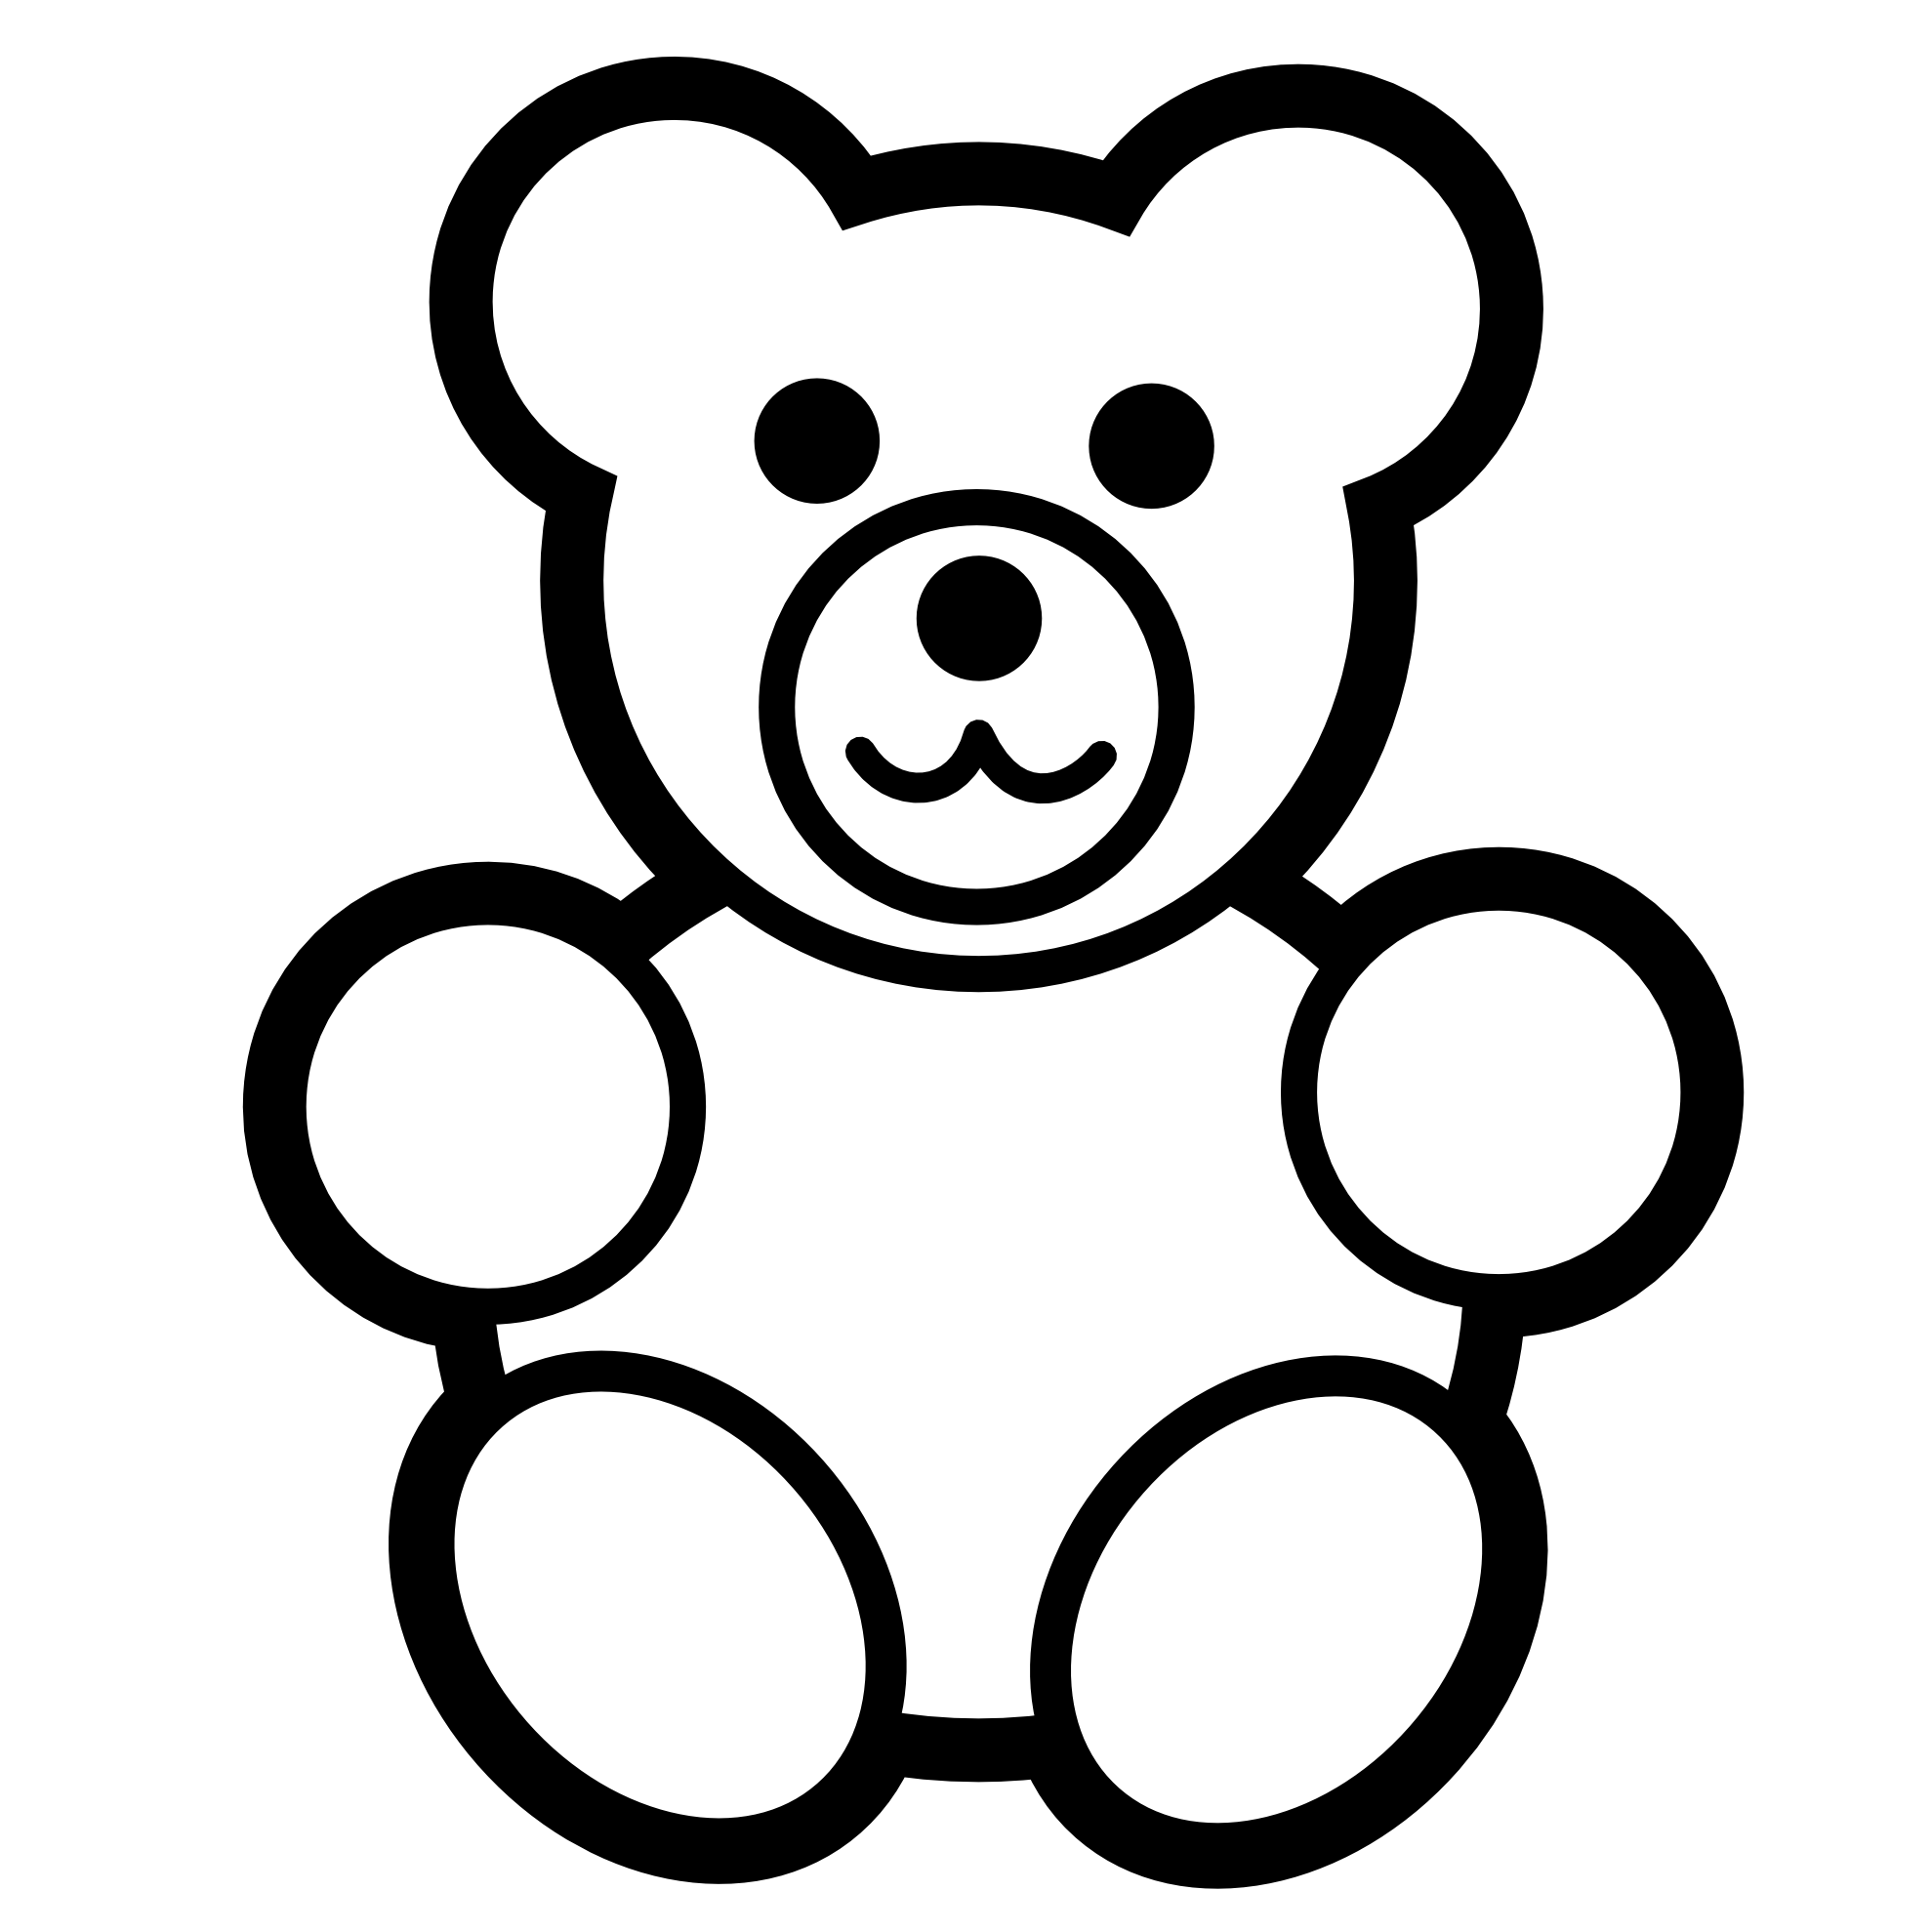 1979x1979 Numbers Clipart For Kids Black And White Clipart Panda